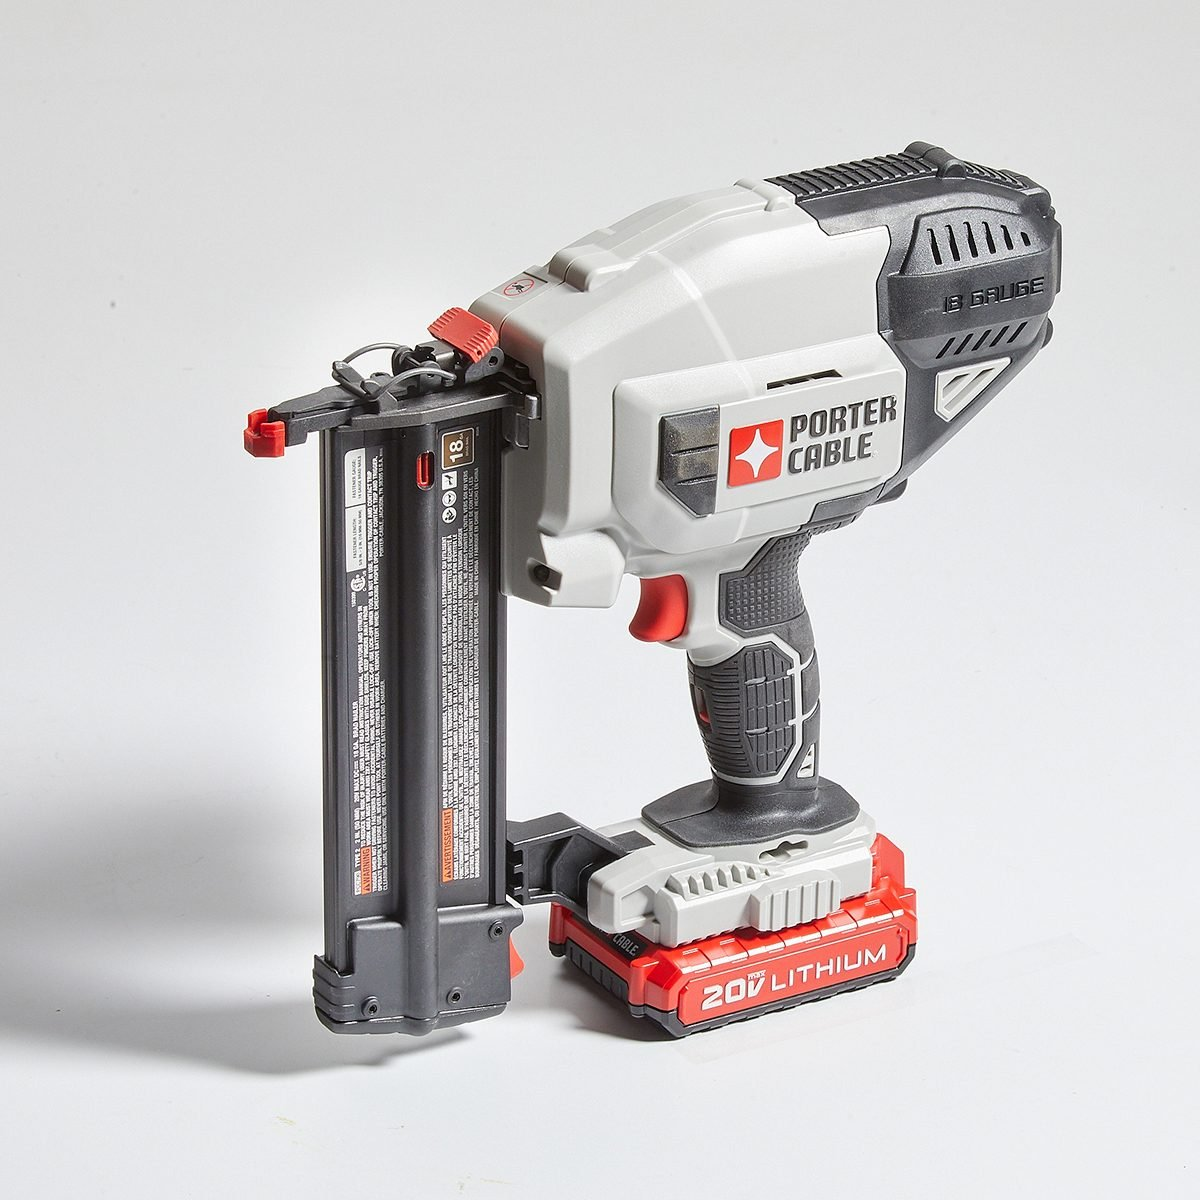 Porter Cable Brad Nailer | Construction Pro Tips